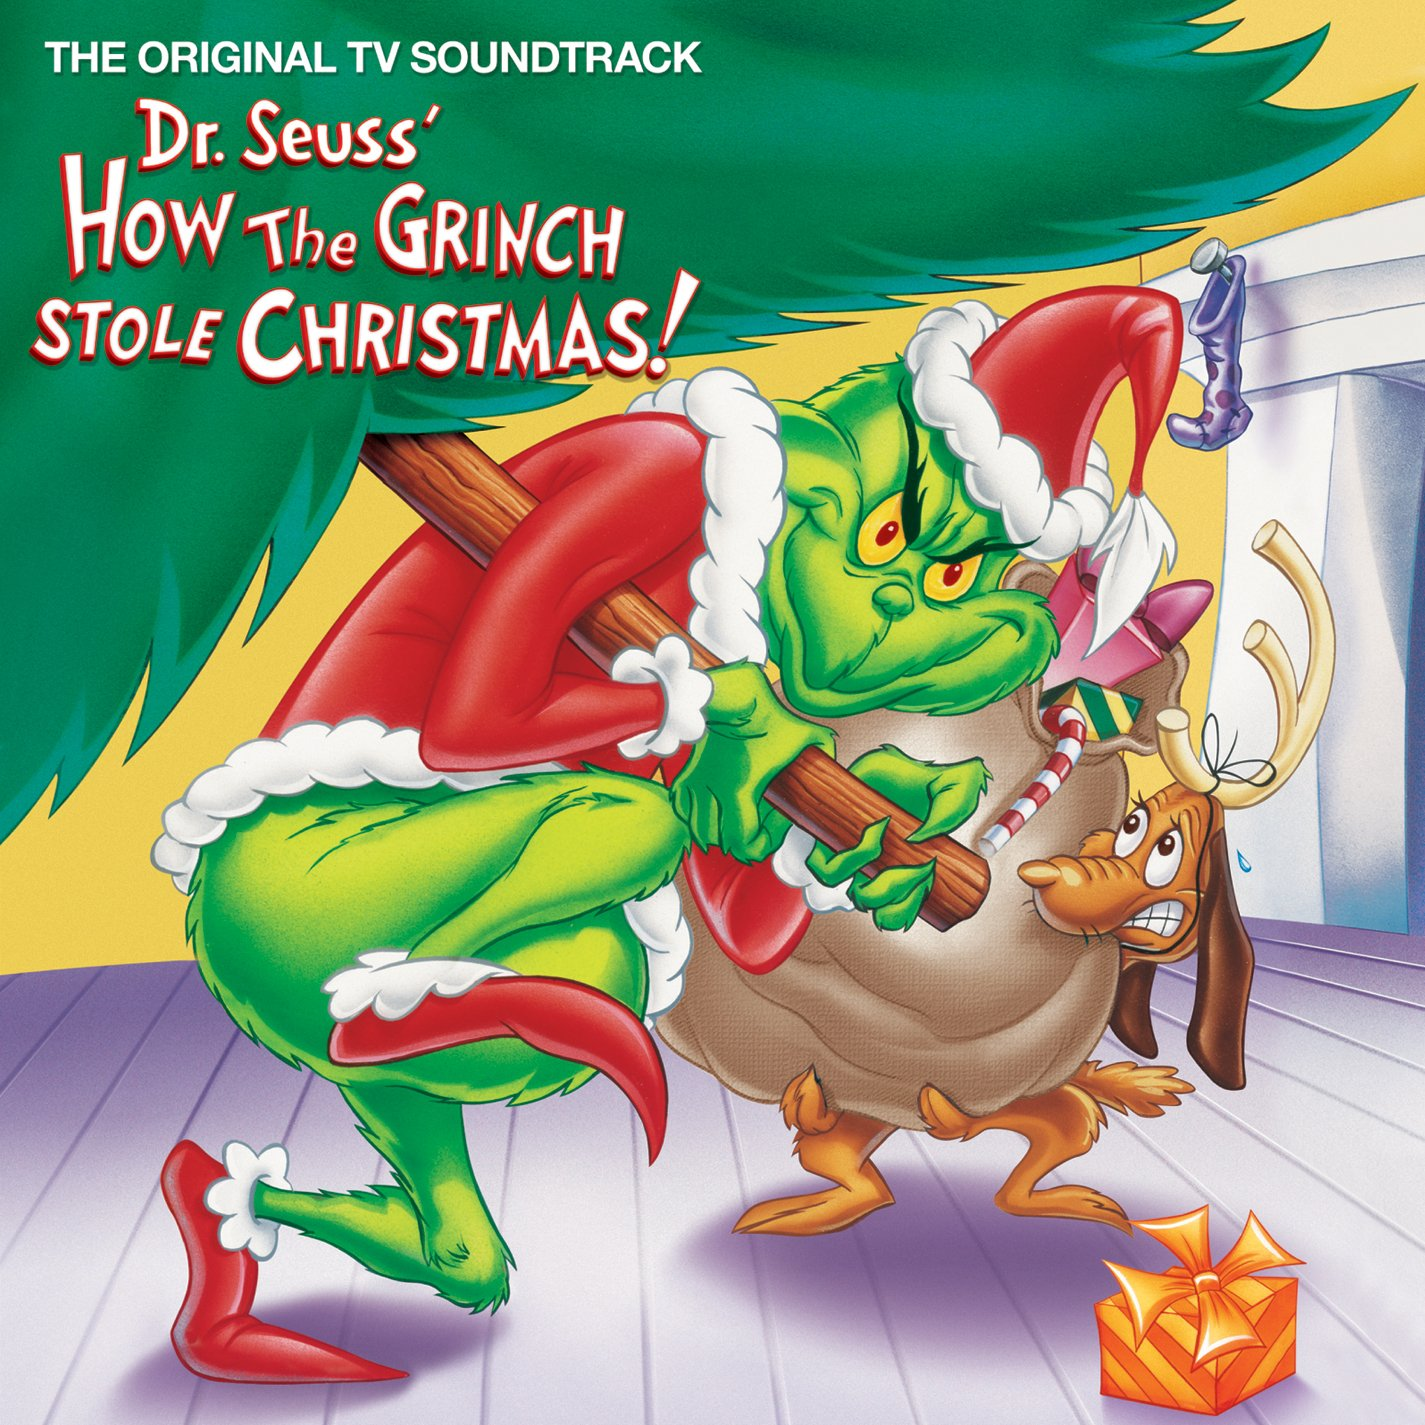 dr seuss how the grinch stole christmas limited edition green vinyl lp rsd new - Dr Seuss How The Grinch Stole Christmas